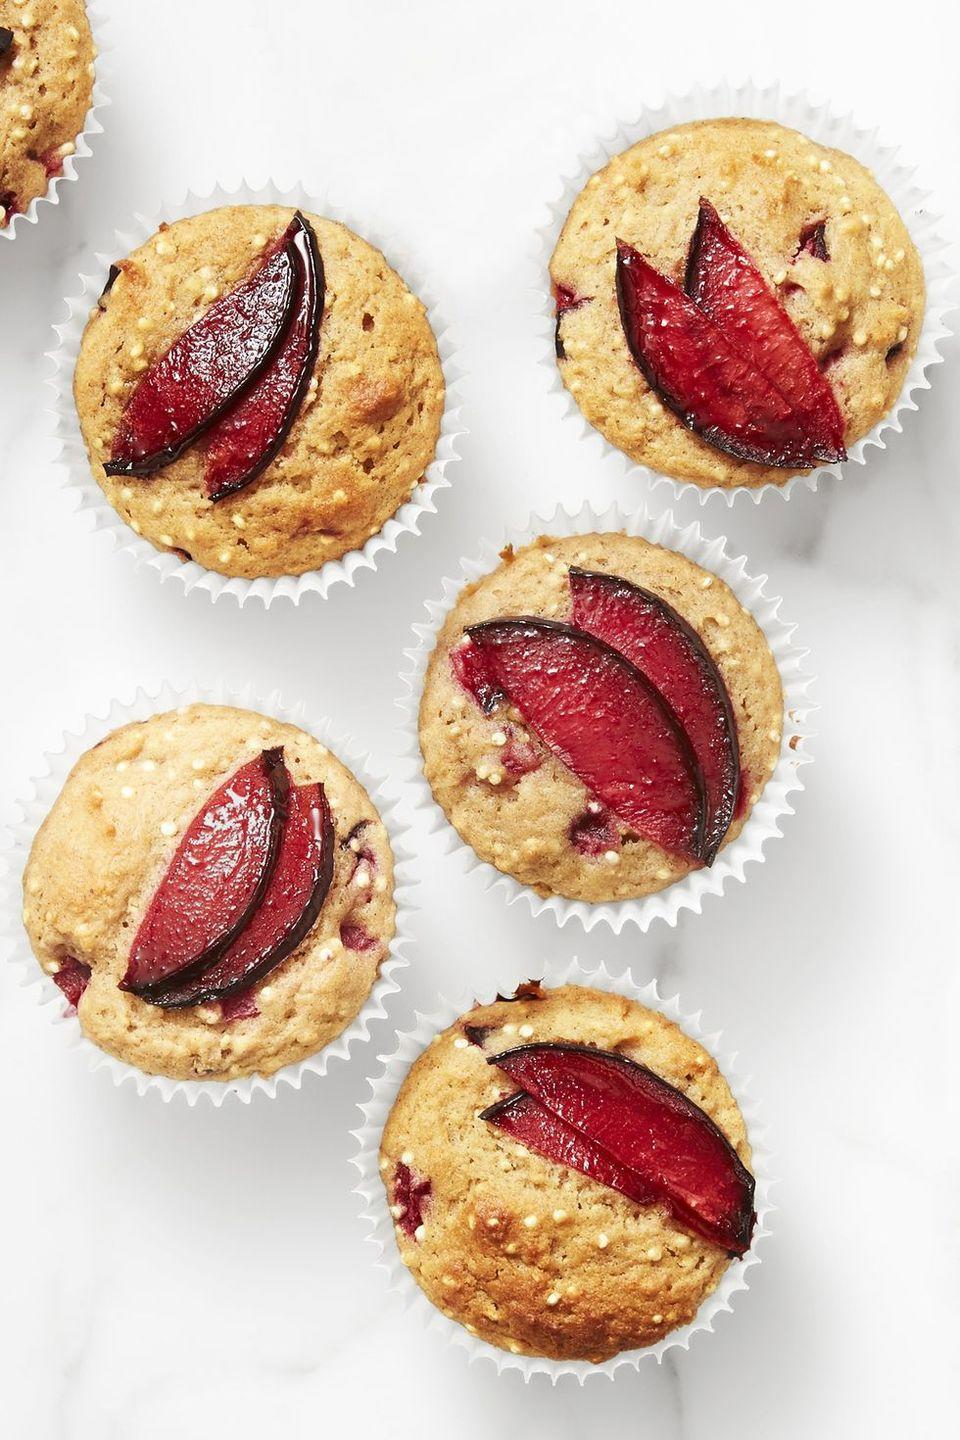 "<p>Muffins are usually indulgent, but quinoa turns these muffins into a protein packed way to start your day.</p><p><em><a href=""https://www.goodhousekeeping.com/food-recipes/a44752/spiced-plum-quinoa-muffins-recipe/"" rel=""nofollow noopener"" target=""_blank"" data-ylk=""slk:Get the recipe for Spiced Plum and Quinoa Muffins »"" class=""link rapid-noclick-resp"">Get the recipe for Spiced Plum and Quinoa Muffins »</a></em></p>"